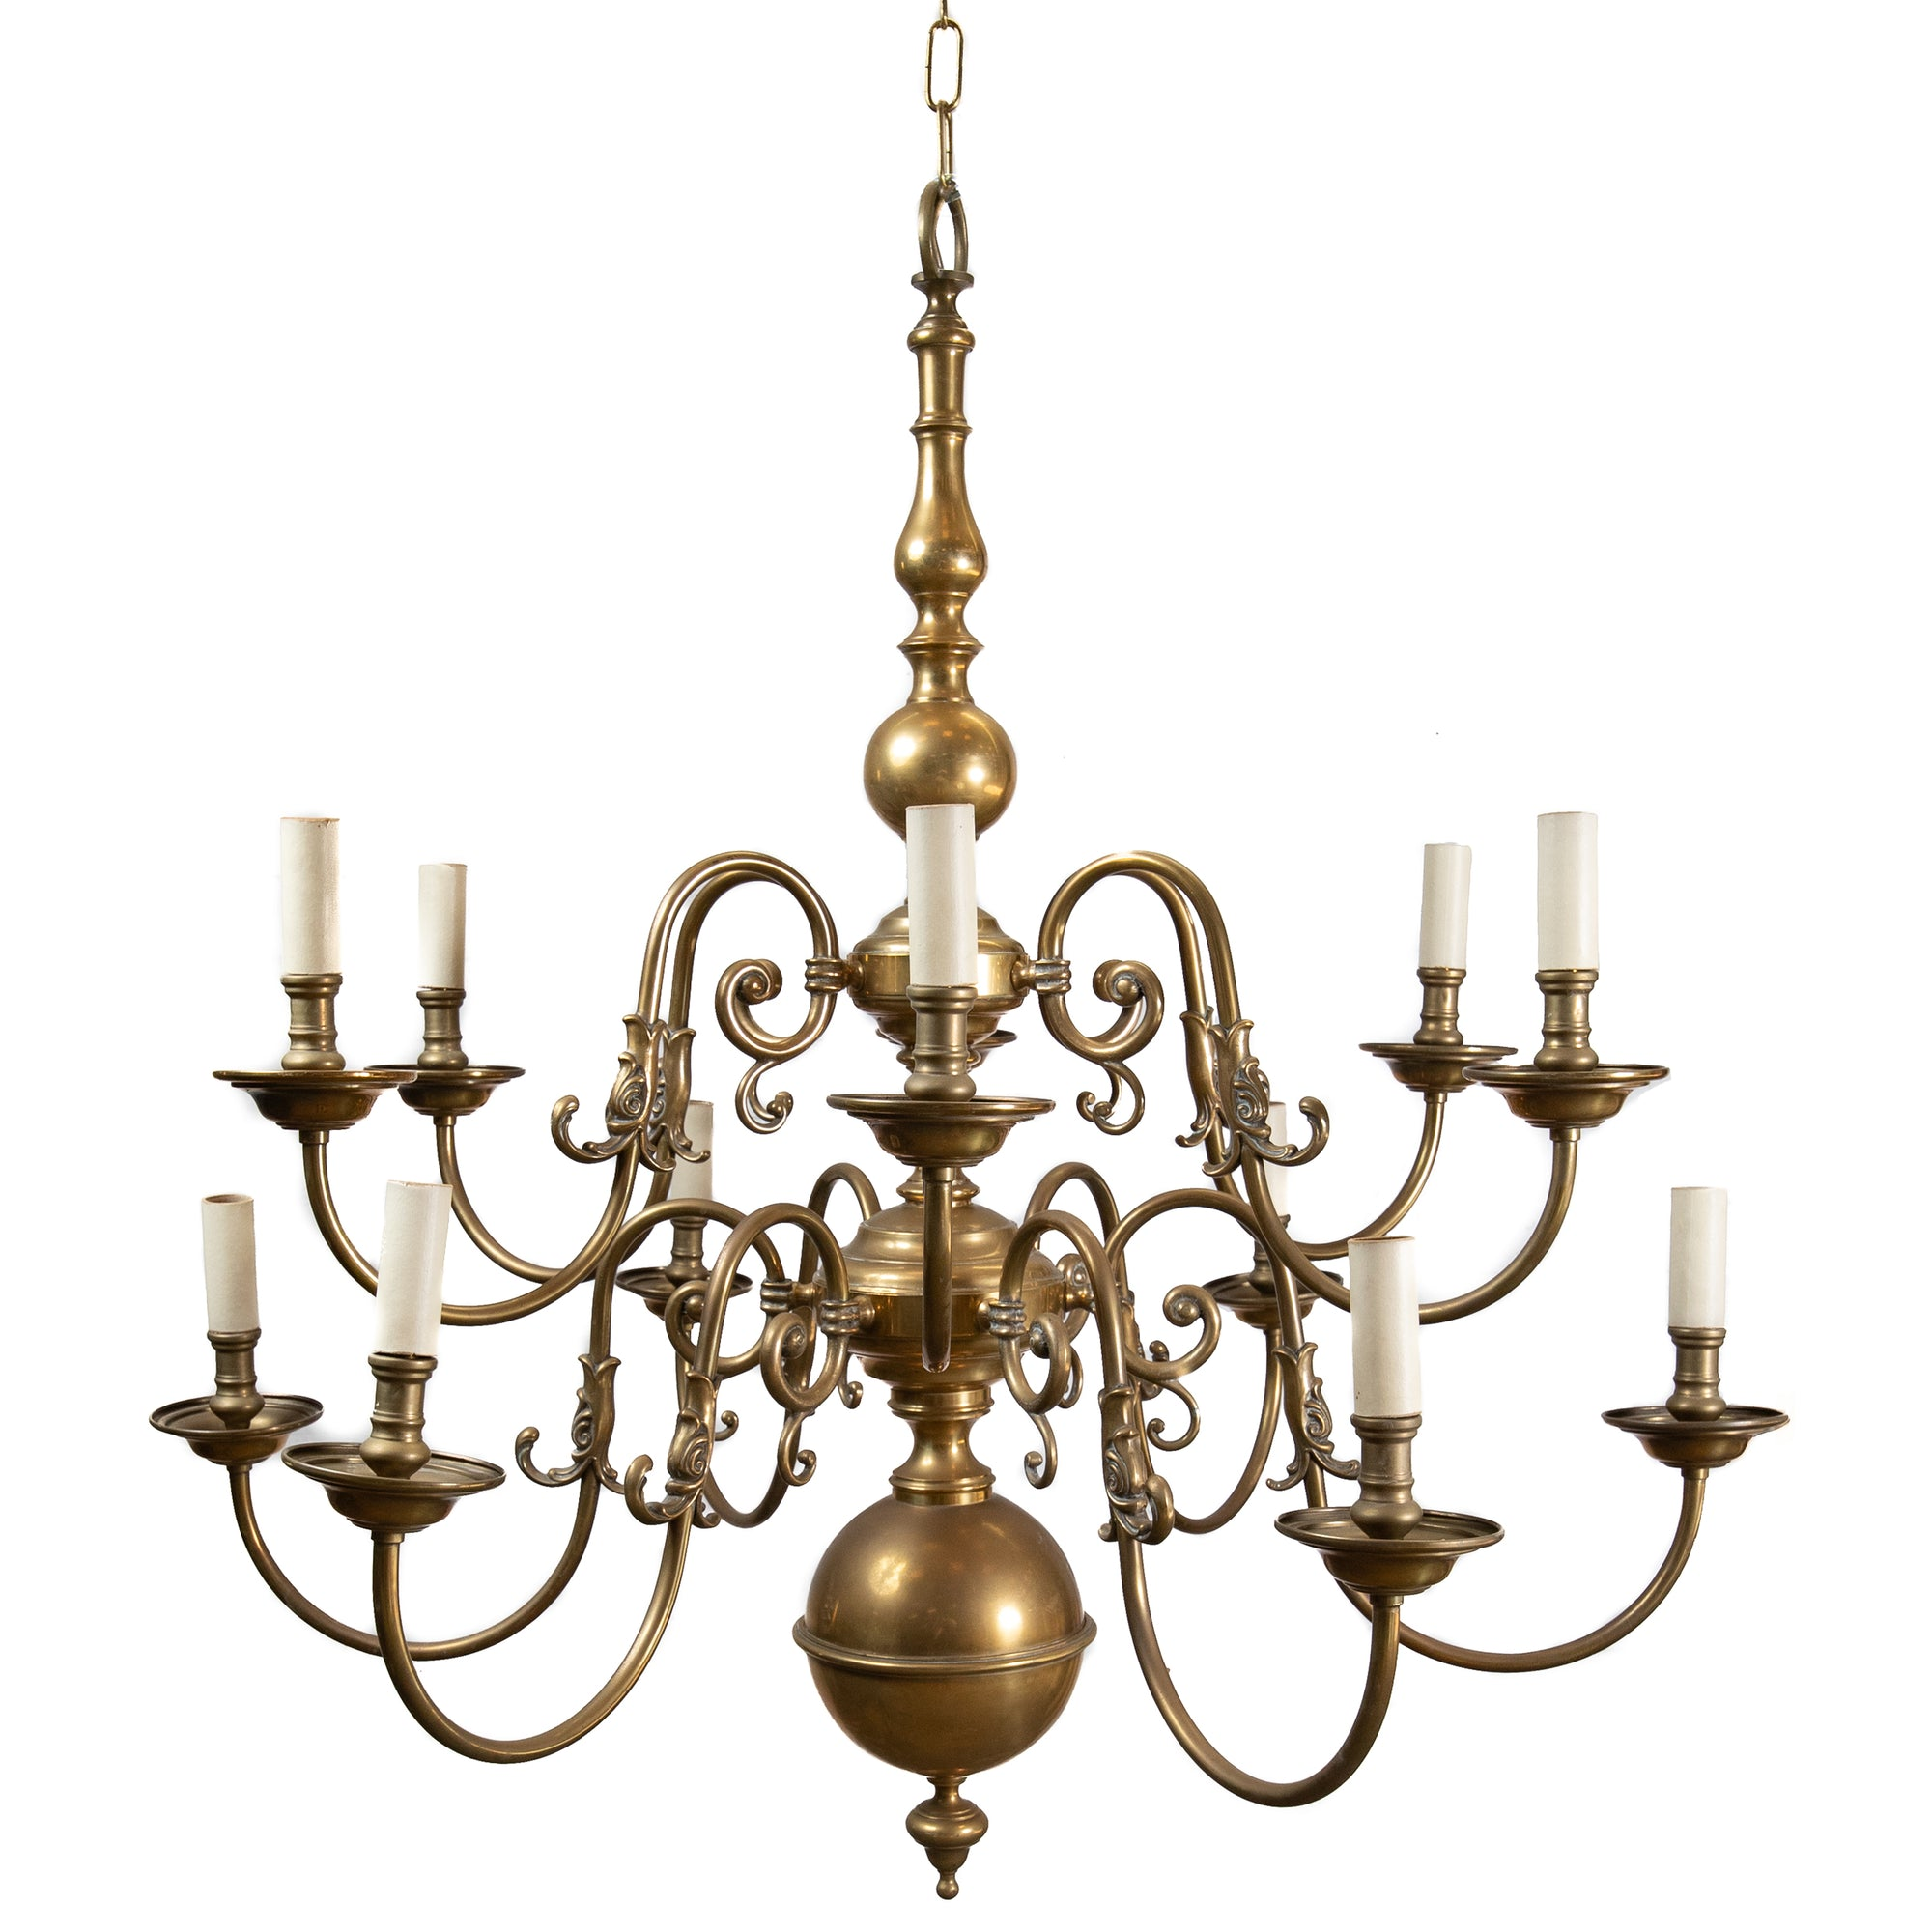 Dutch Style 2 Tier 12 Arm Brass Chandelier